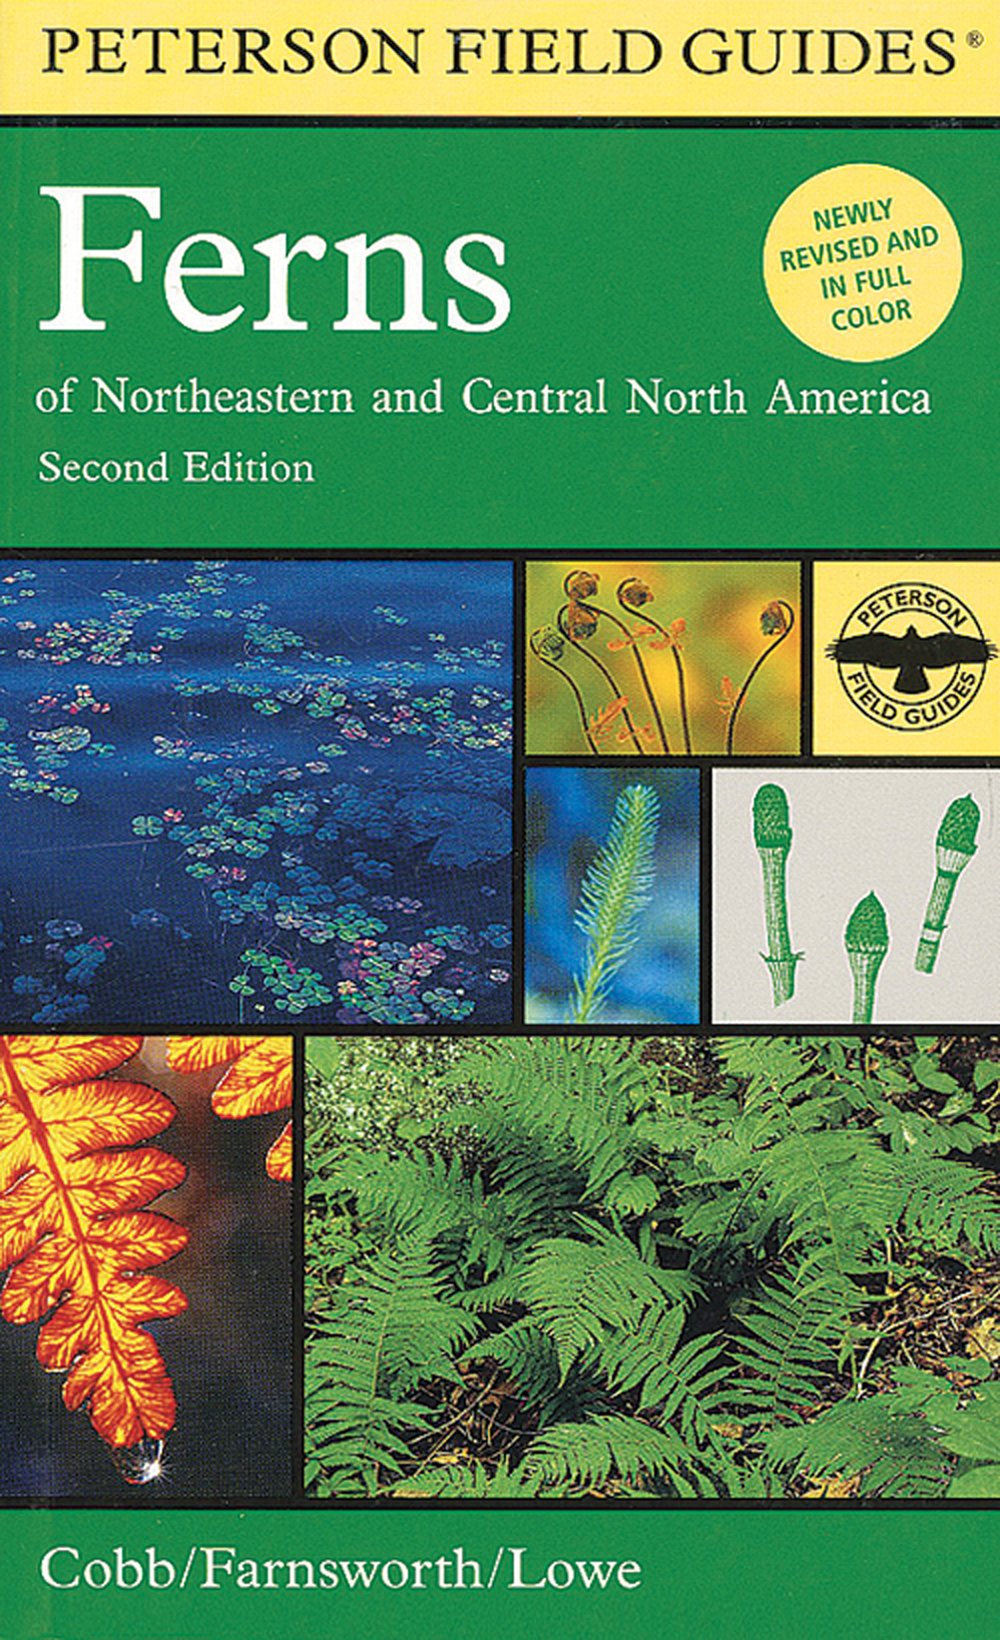 Ferns of Northeastern and Central North America (Peterson Field Guide®)